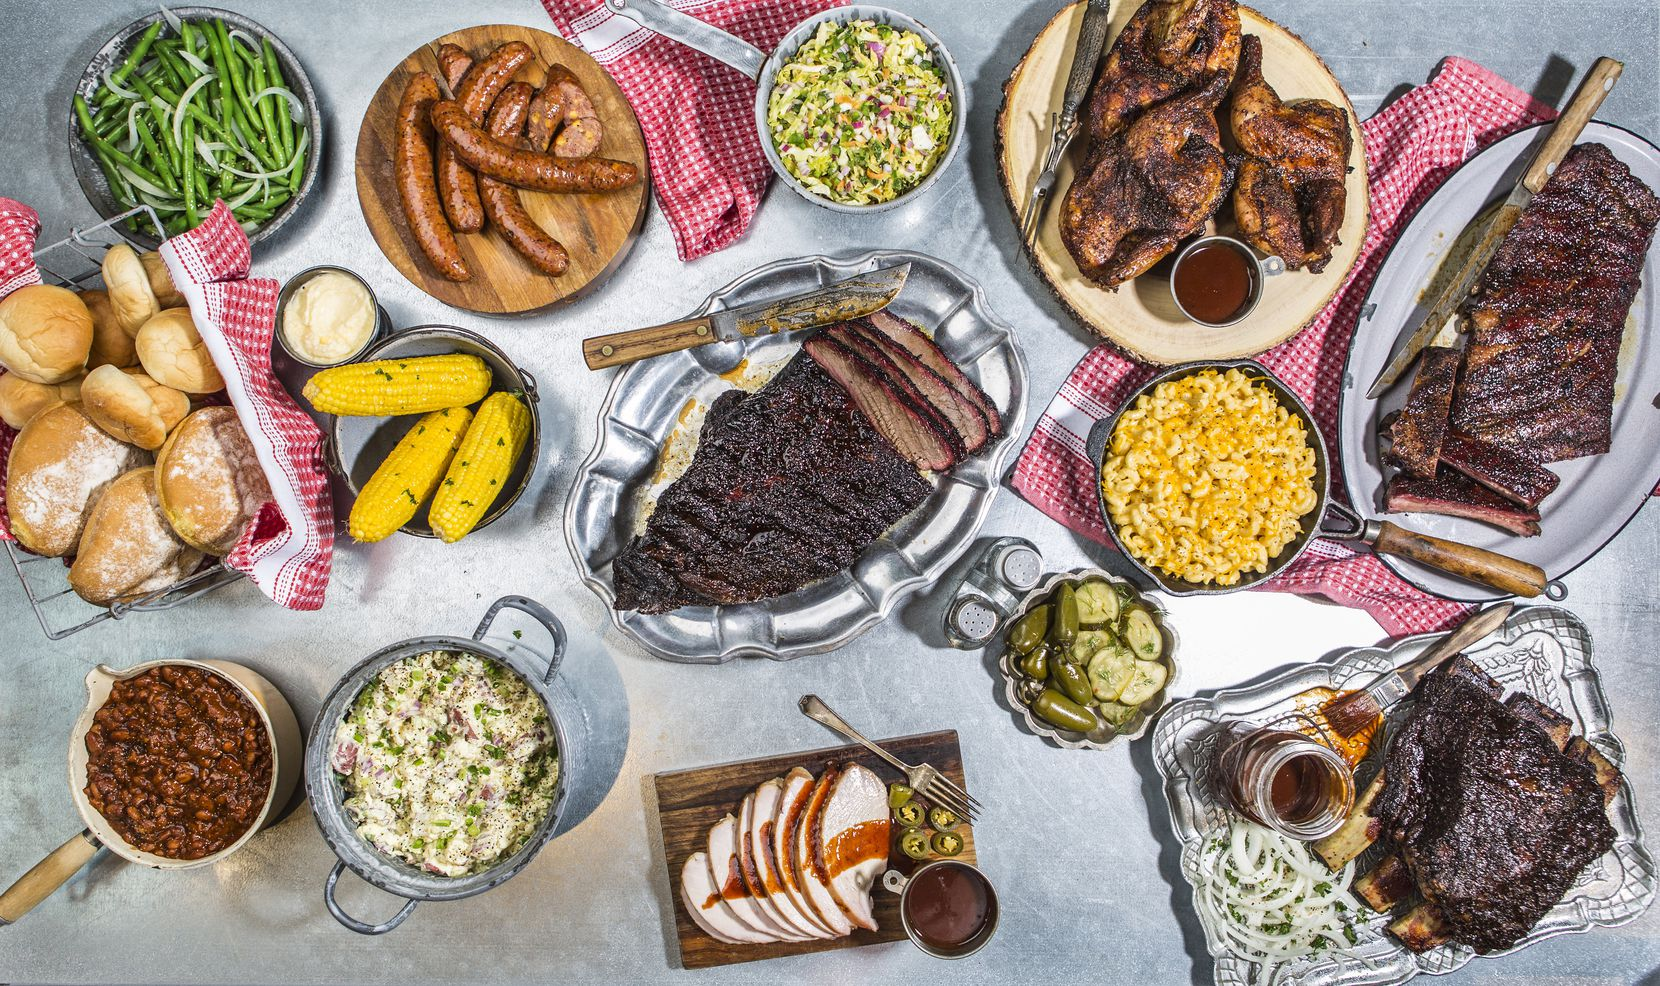 Ten 50 BBQ is offering an $80 Easter menu that feeds 4-6 people that includes a choice of one meat (brisket, pulled pork or turkey breast), a choice of two sides like brisket baked beans and green beans, six yeast rolls and barbecue.